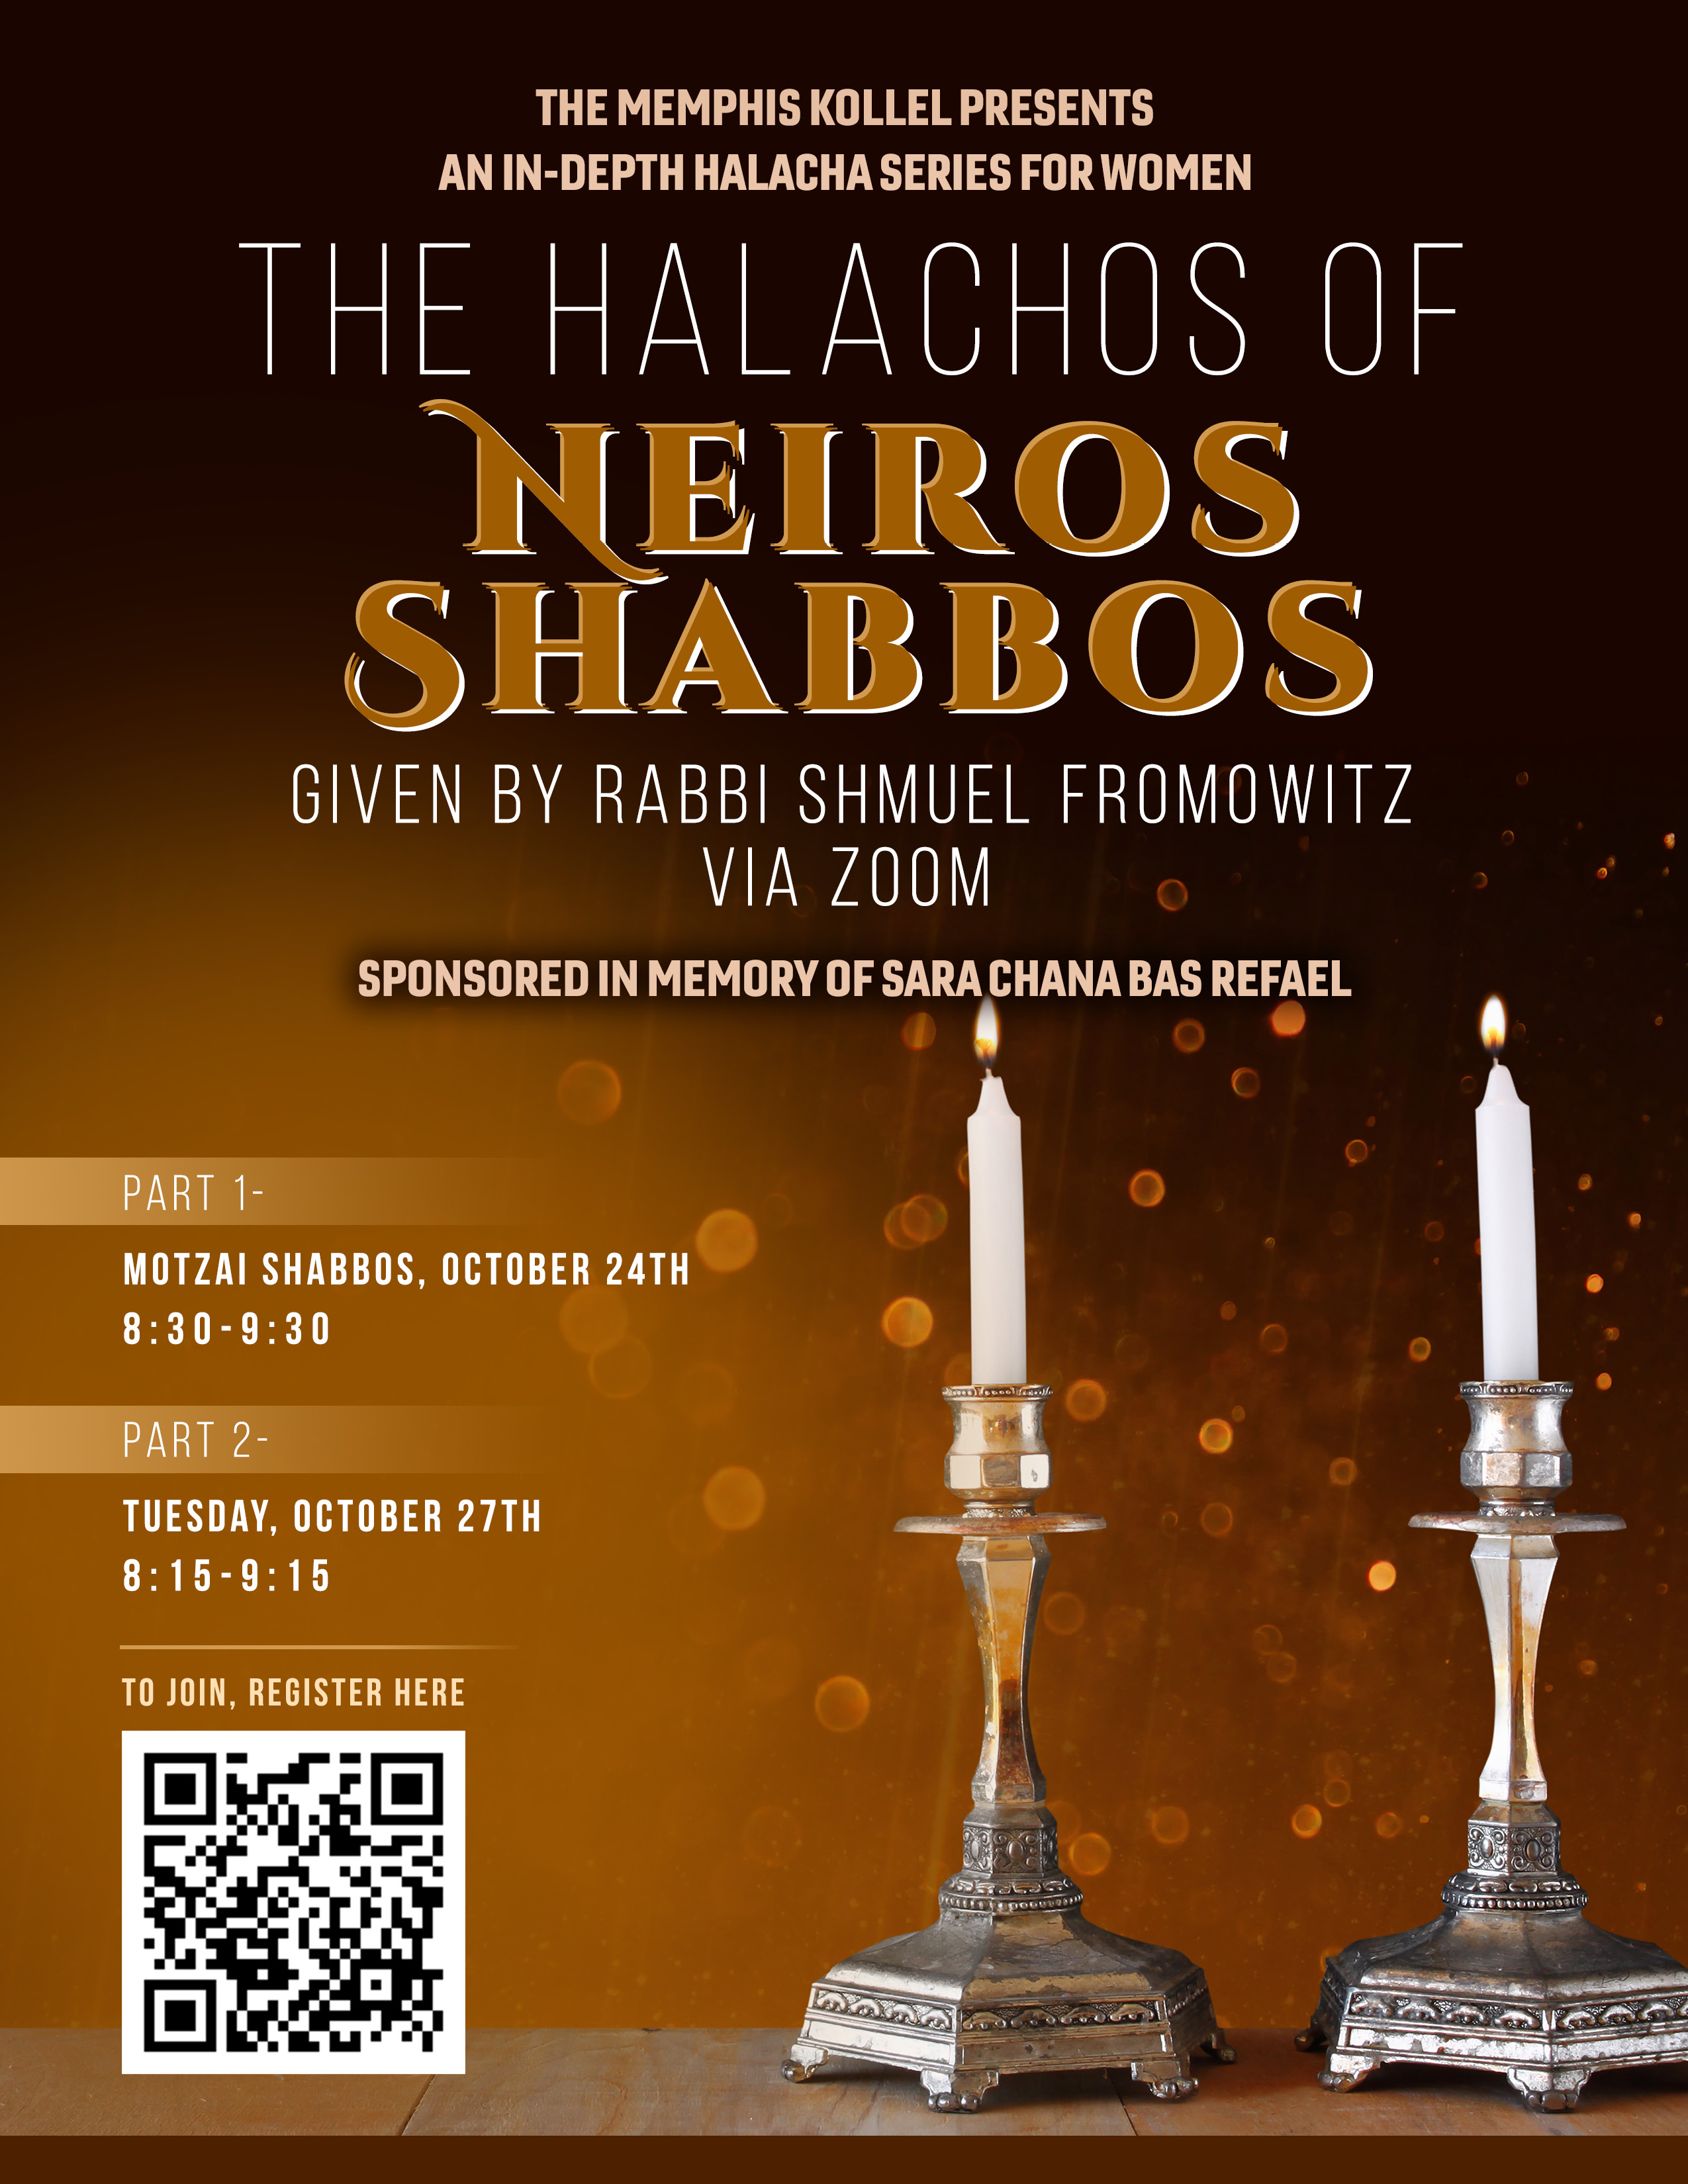 NS neiros shabbos flyer